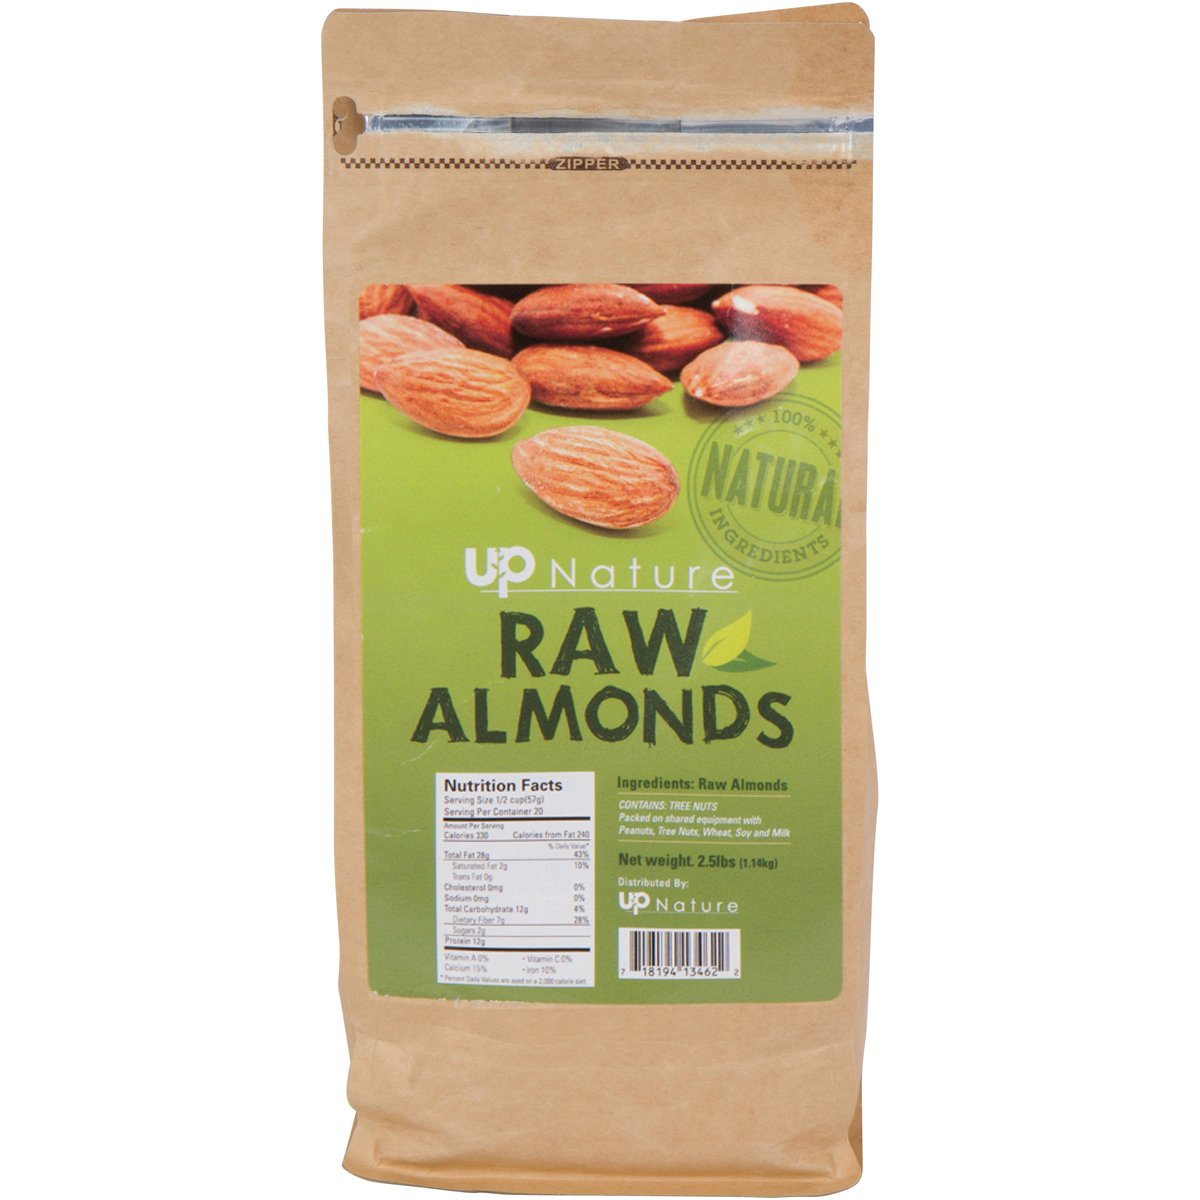 UpNature Raw Almonds – 2.5 Lbs. Fresh Quality Nuts – 100% All Natural – Packed with Nutrients – Delicious and Healthy Snacks – Savory Non-GMO Snacks – Kosher Food